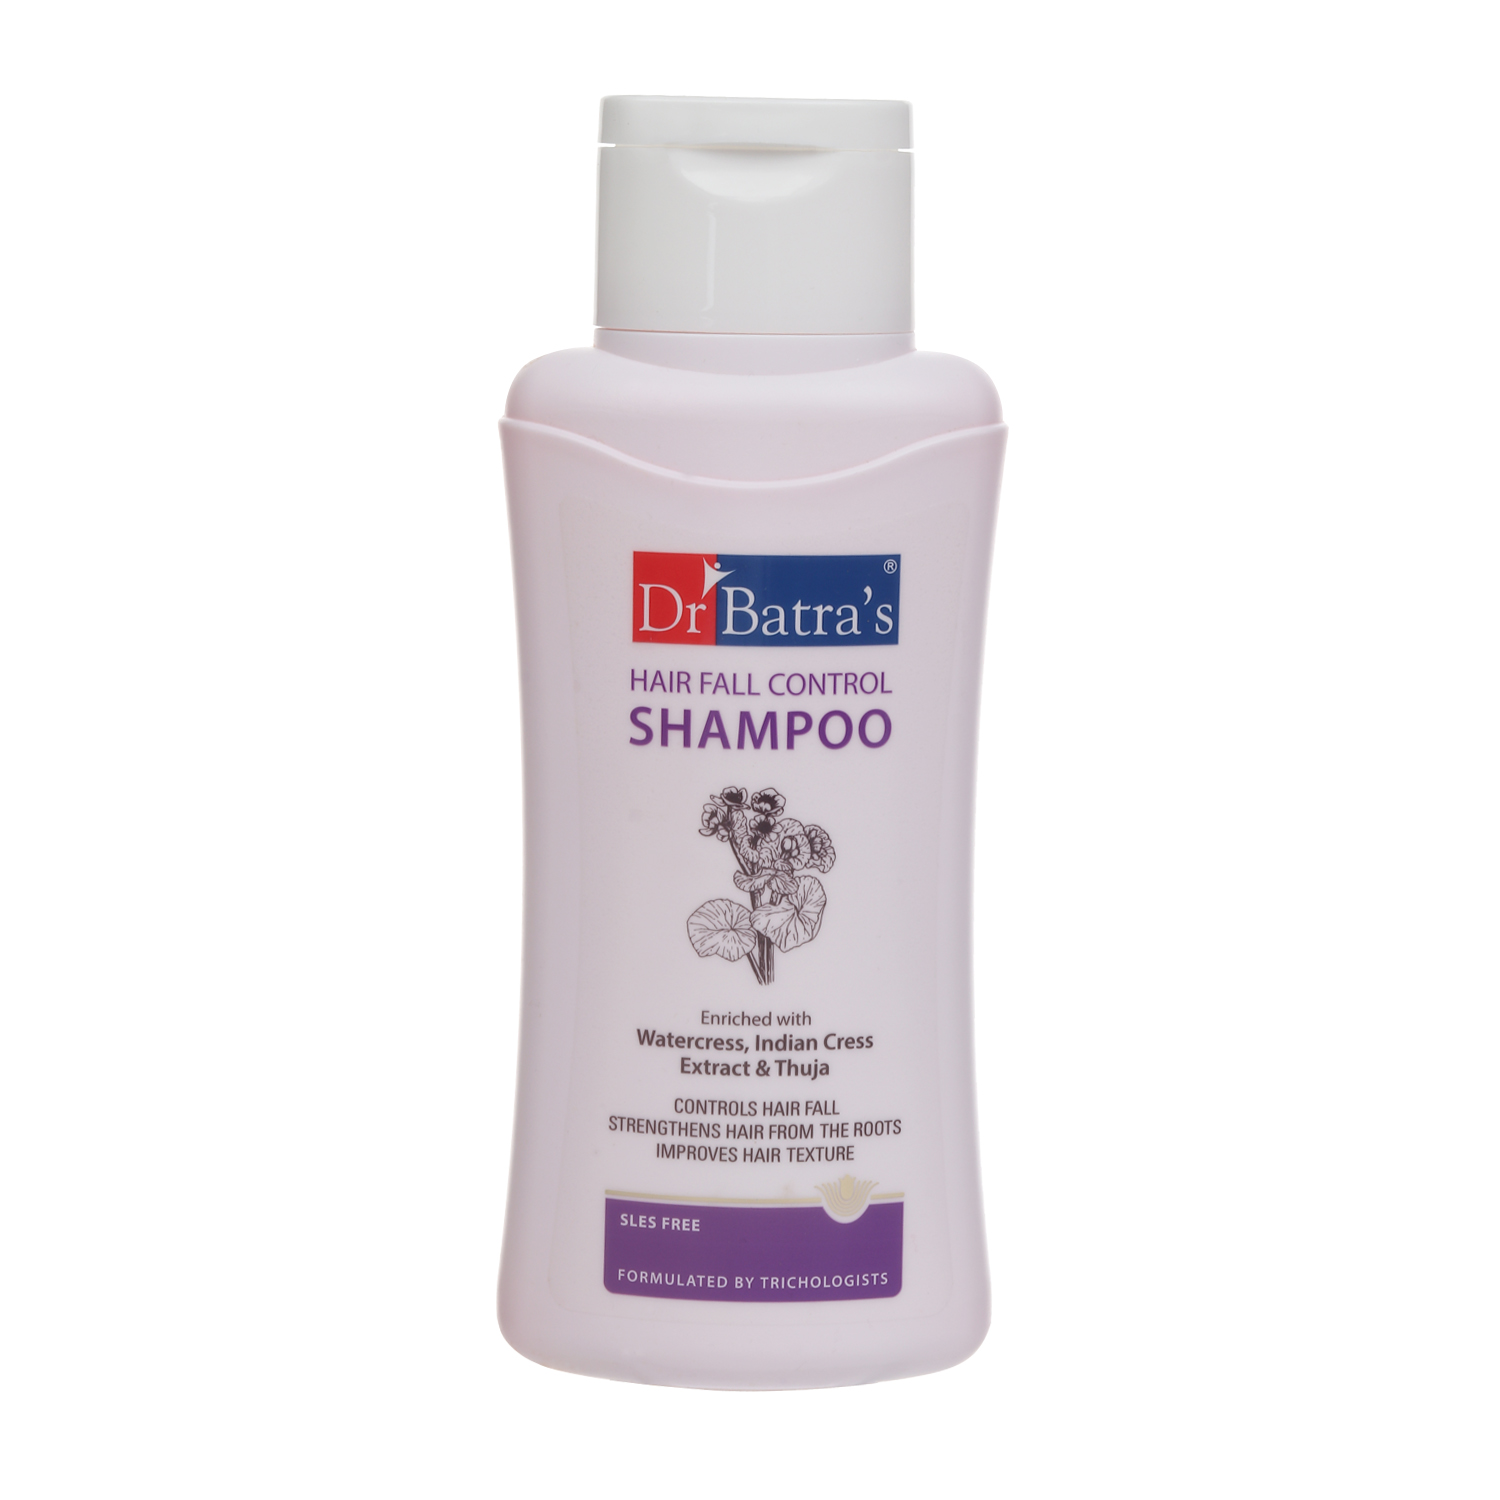 Dr Batra's | Dr Batra's Hair Fall Control Shampoo Enriched With Watercress, Indian Cress extract and Thuja - 500 ml